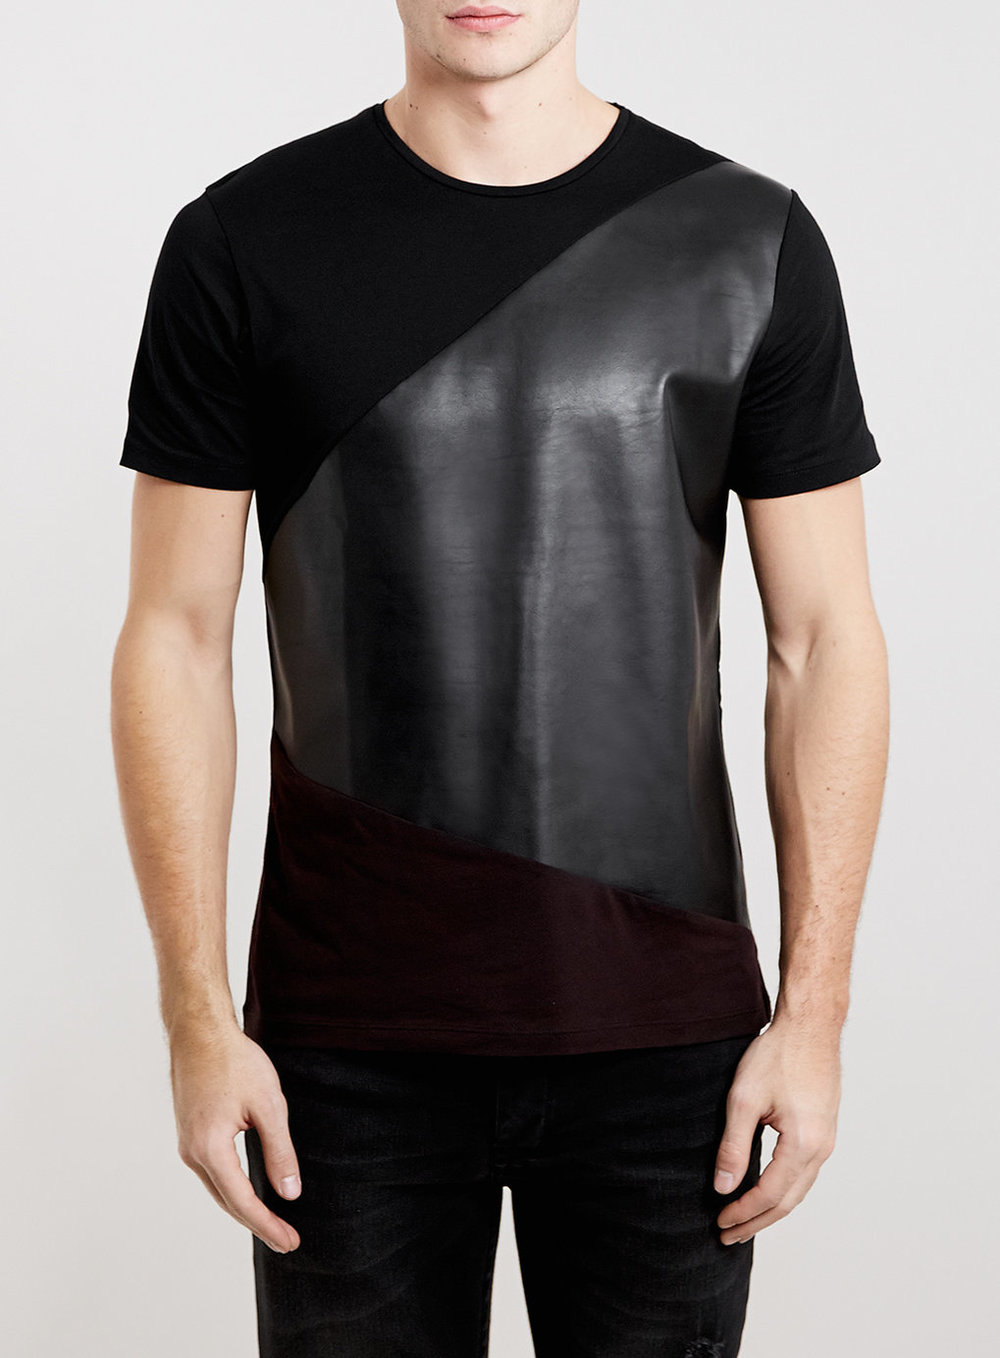 Topman Burgundy Leather Look Panel T-Shirt    $40.00